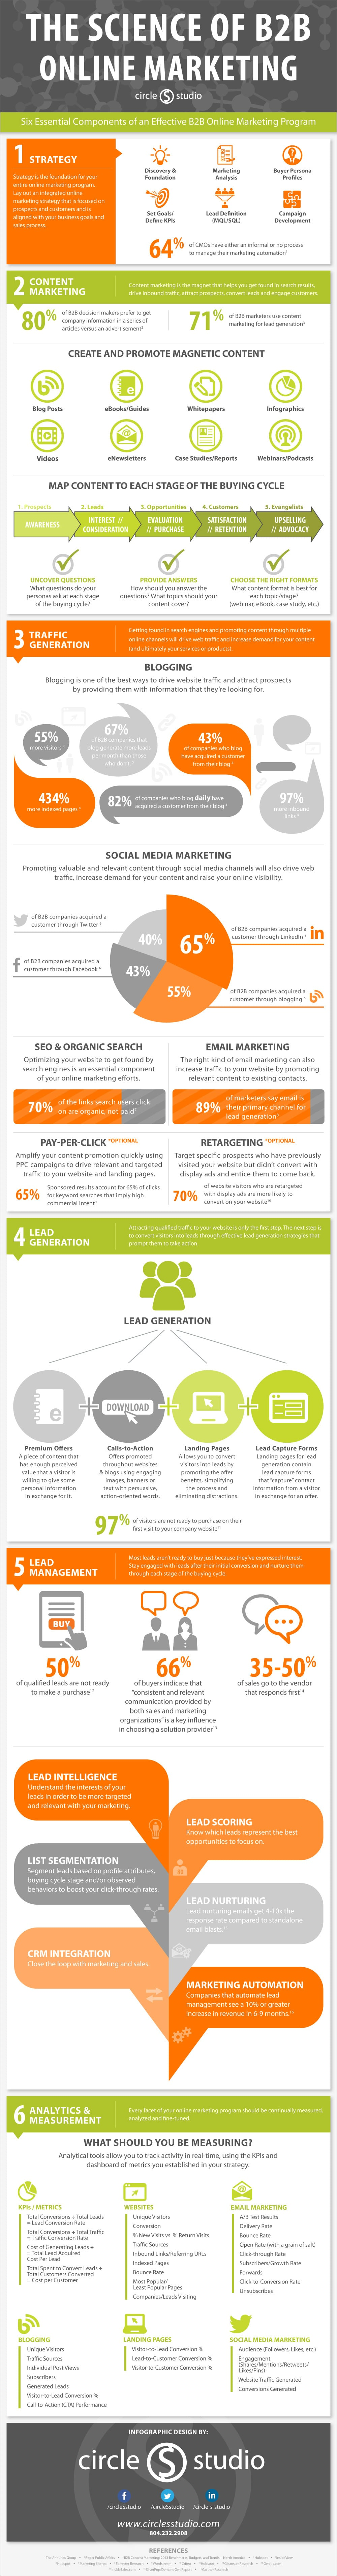 The Science of B2B Online Marketing [INFOGRAPHIC]